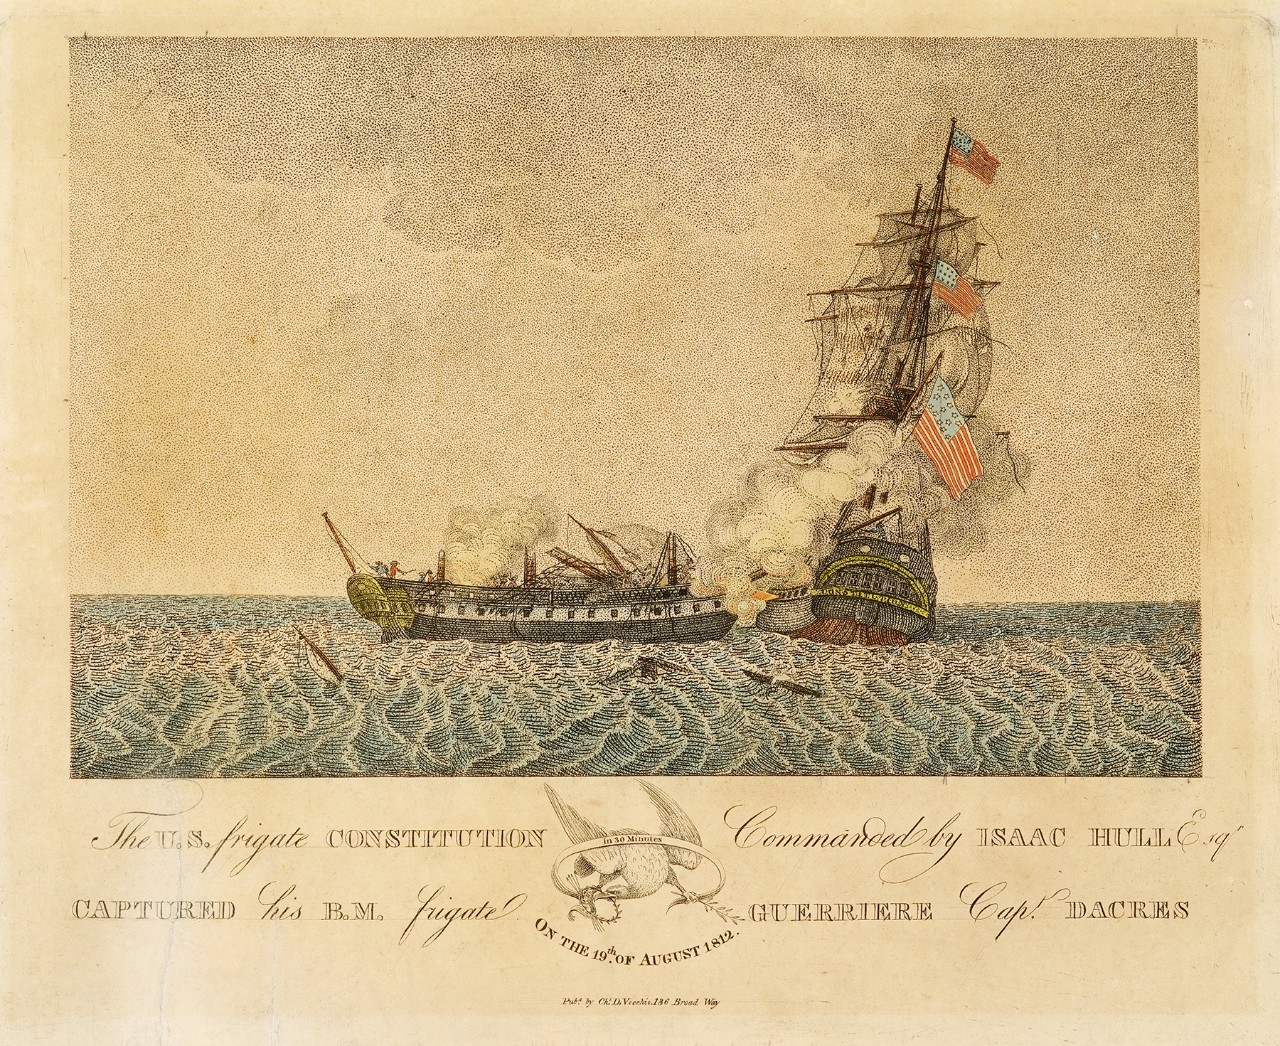 The ship on the right is broadside to the ship on the left, which is demasted and smoking